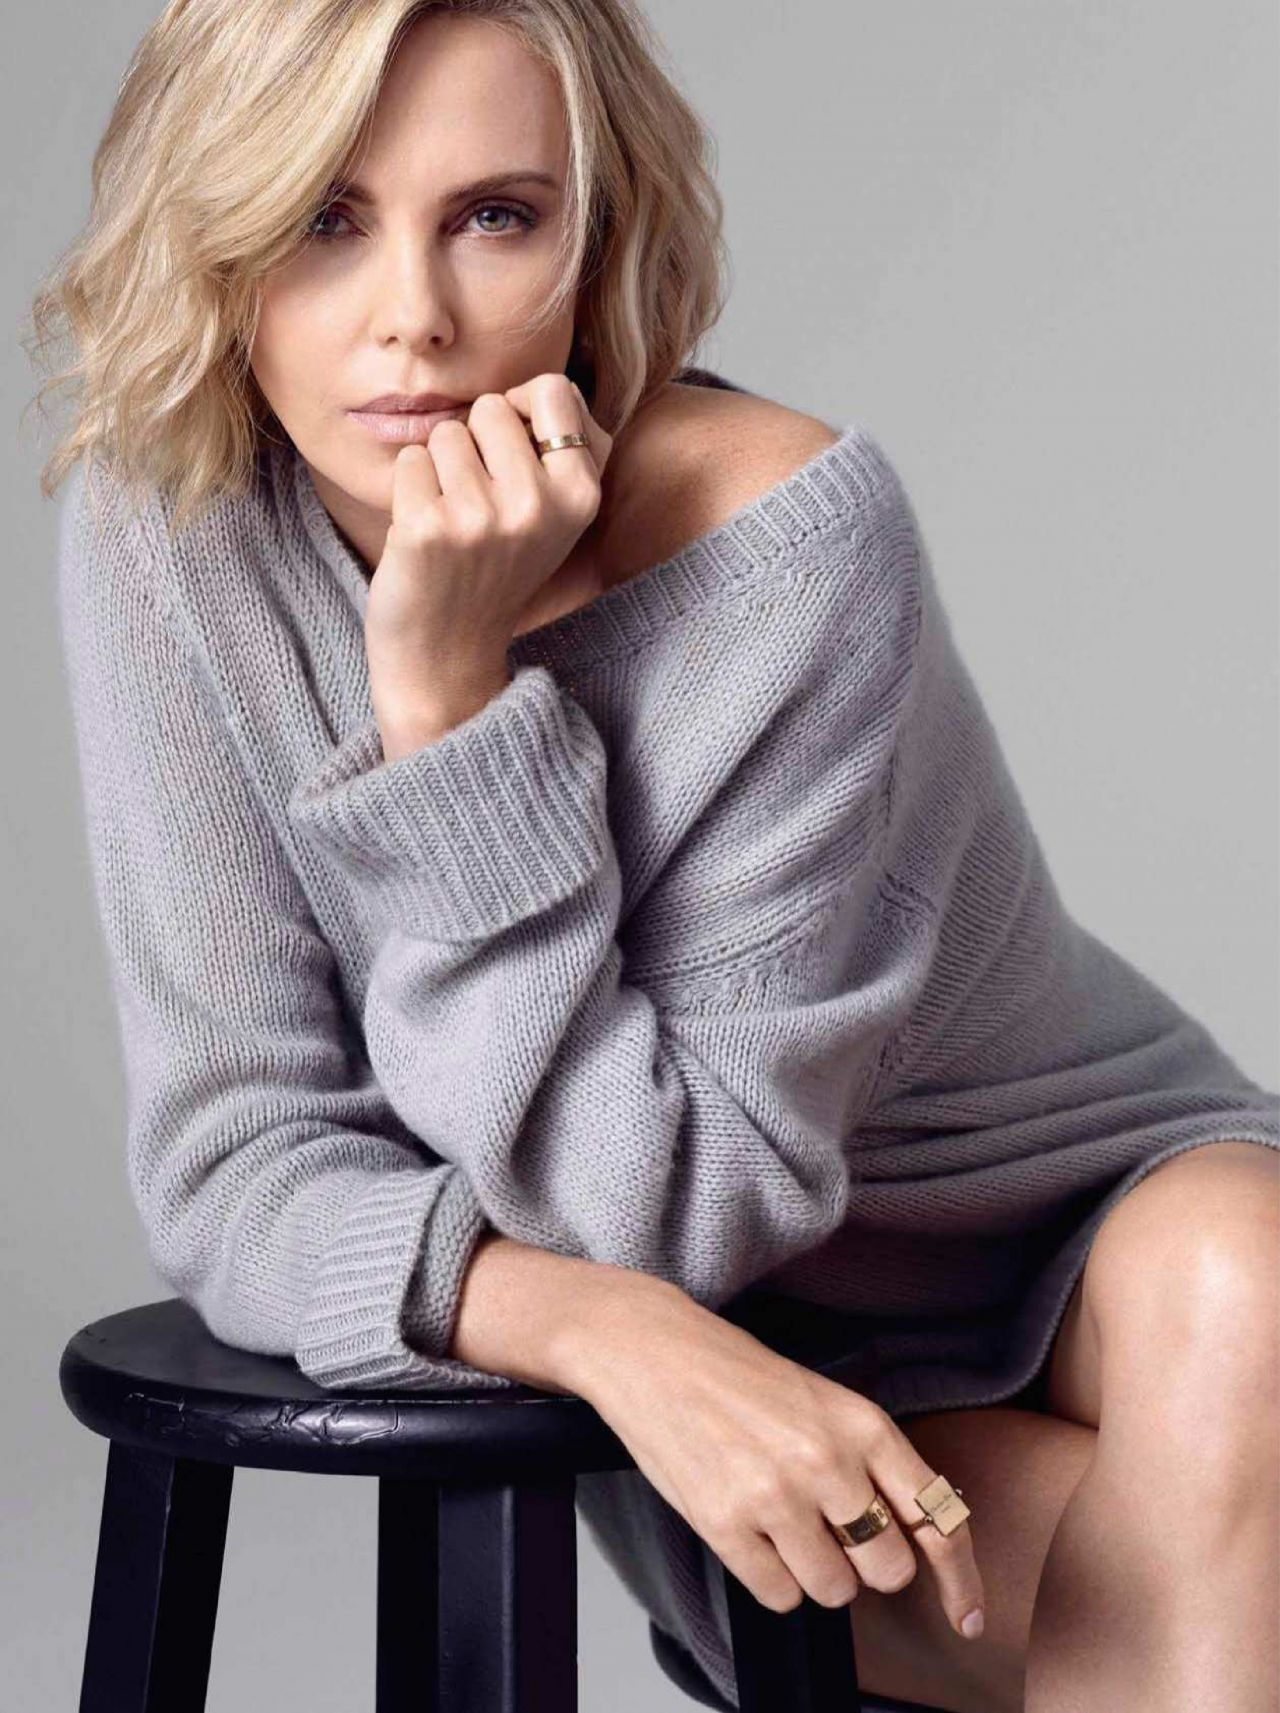 Charlize Theron Glamour Spain December 2018 Issue